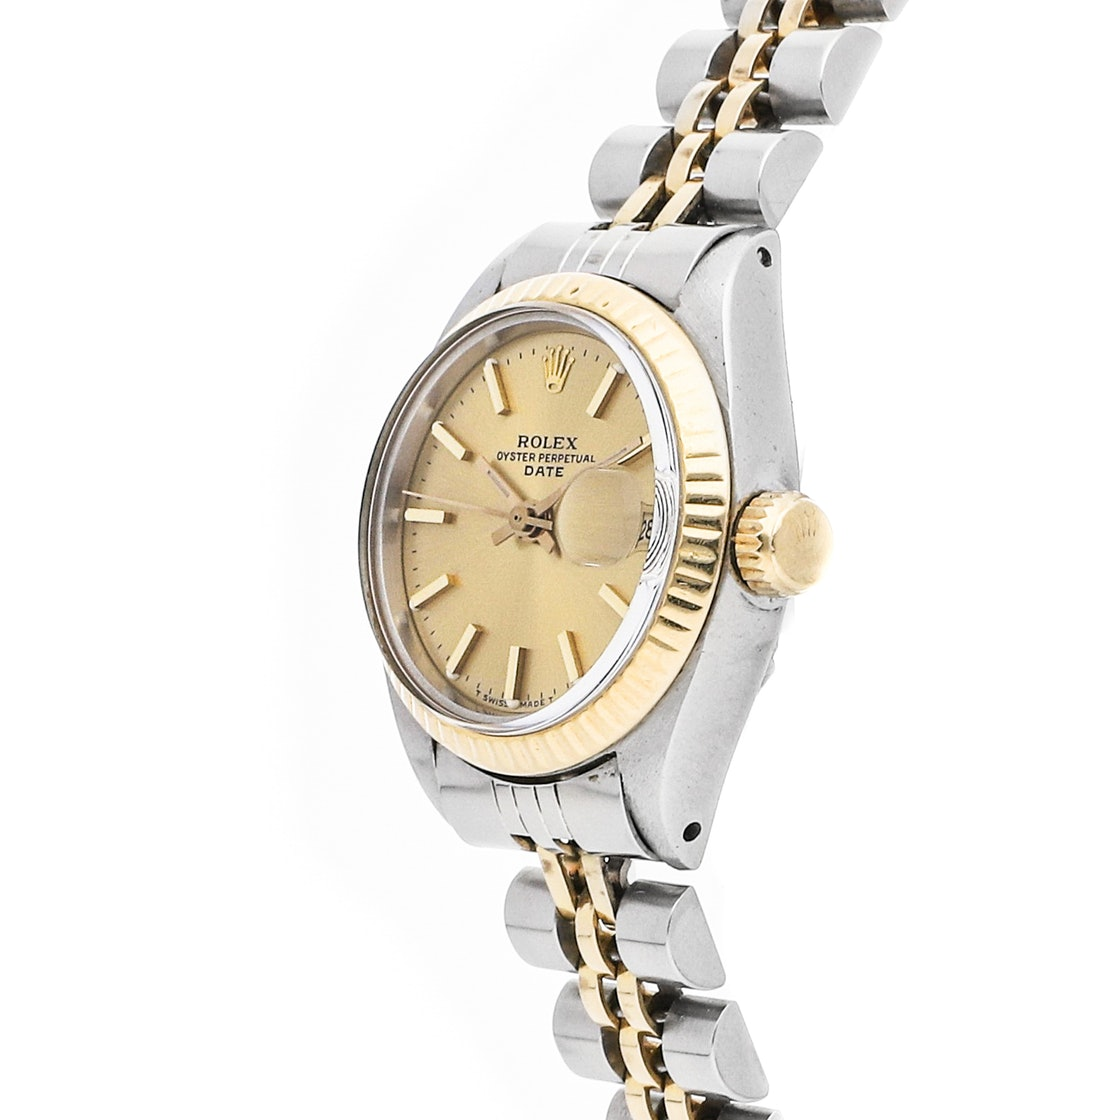 Rolex Oyster Perpetual 6917/3